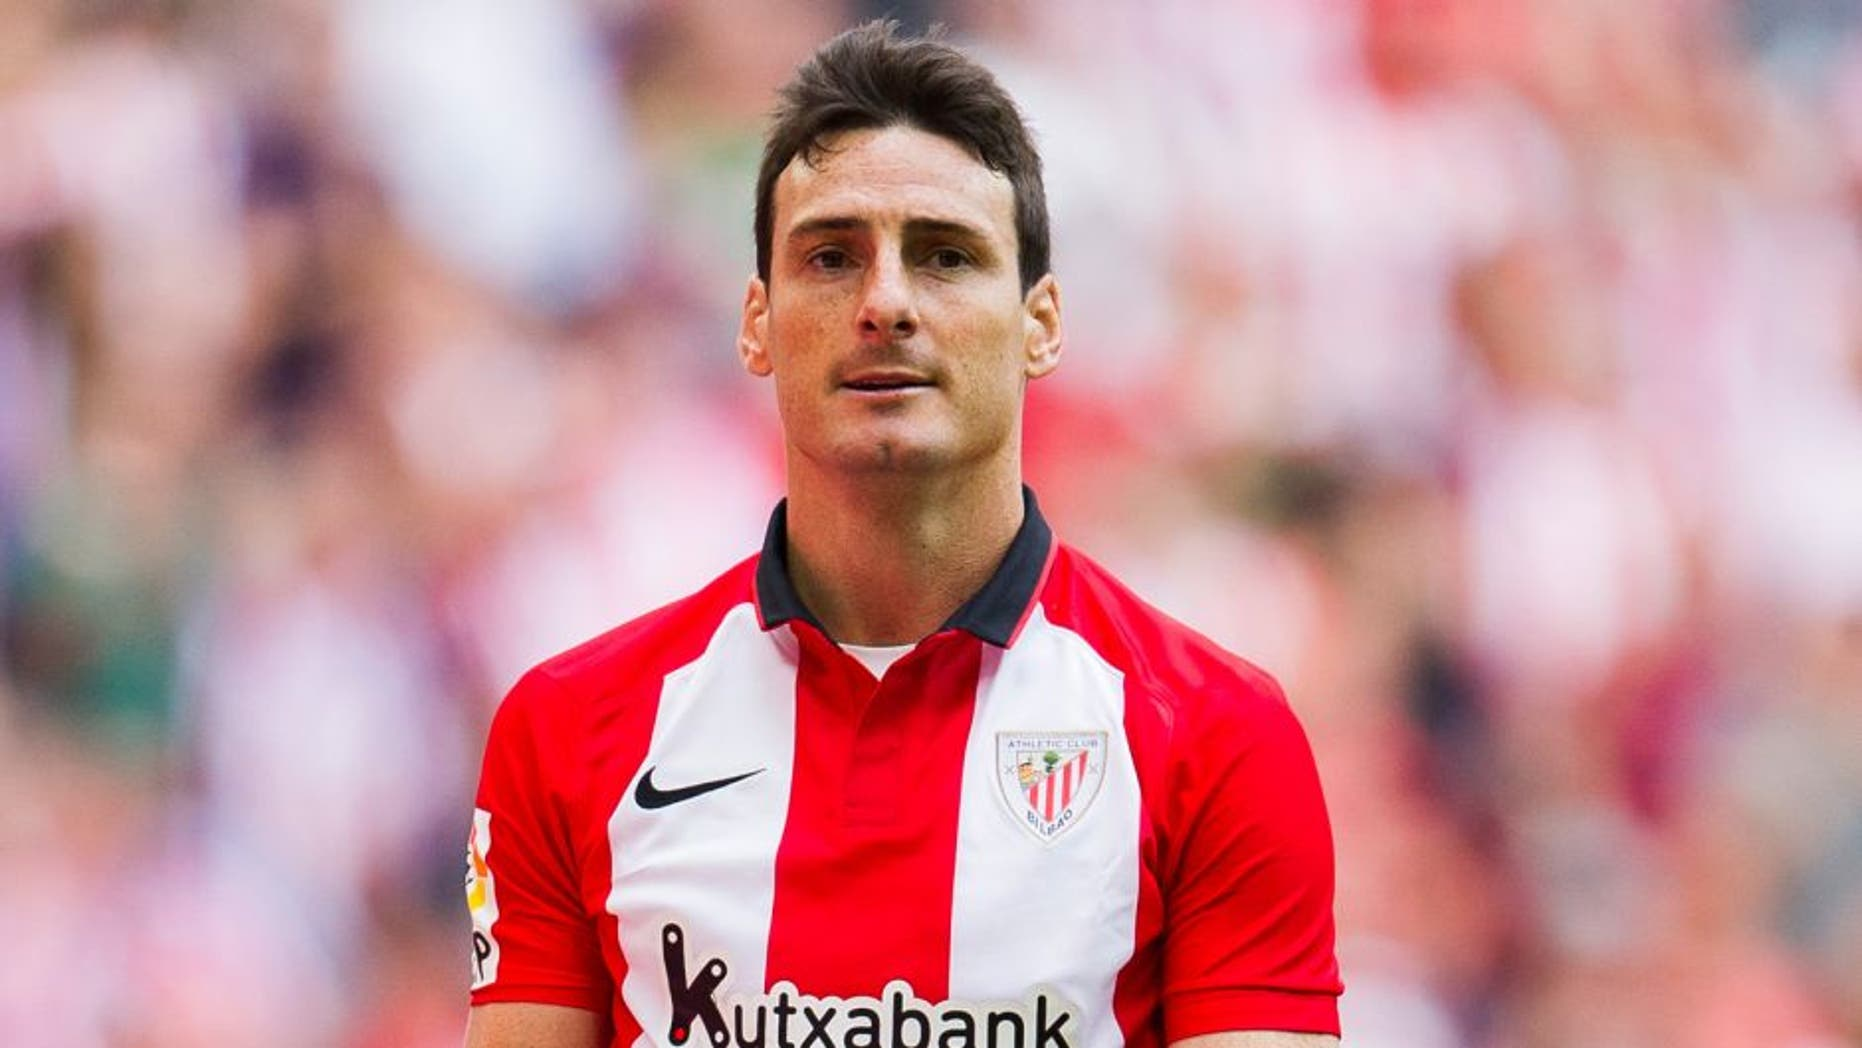 BILBAO, SPAIN - SEPTEMBER 13: Aritz Aduriz of Athletic Club Bilbao celebrates after scoring during the La Liga match between Athletic Club and Getafe CF at San Mames Stadium on September 13, 2015 in Bilbao, Spain. (Photo by Juan Manuel Serrano Arce/Getty Images)